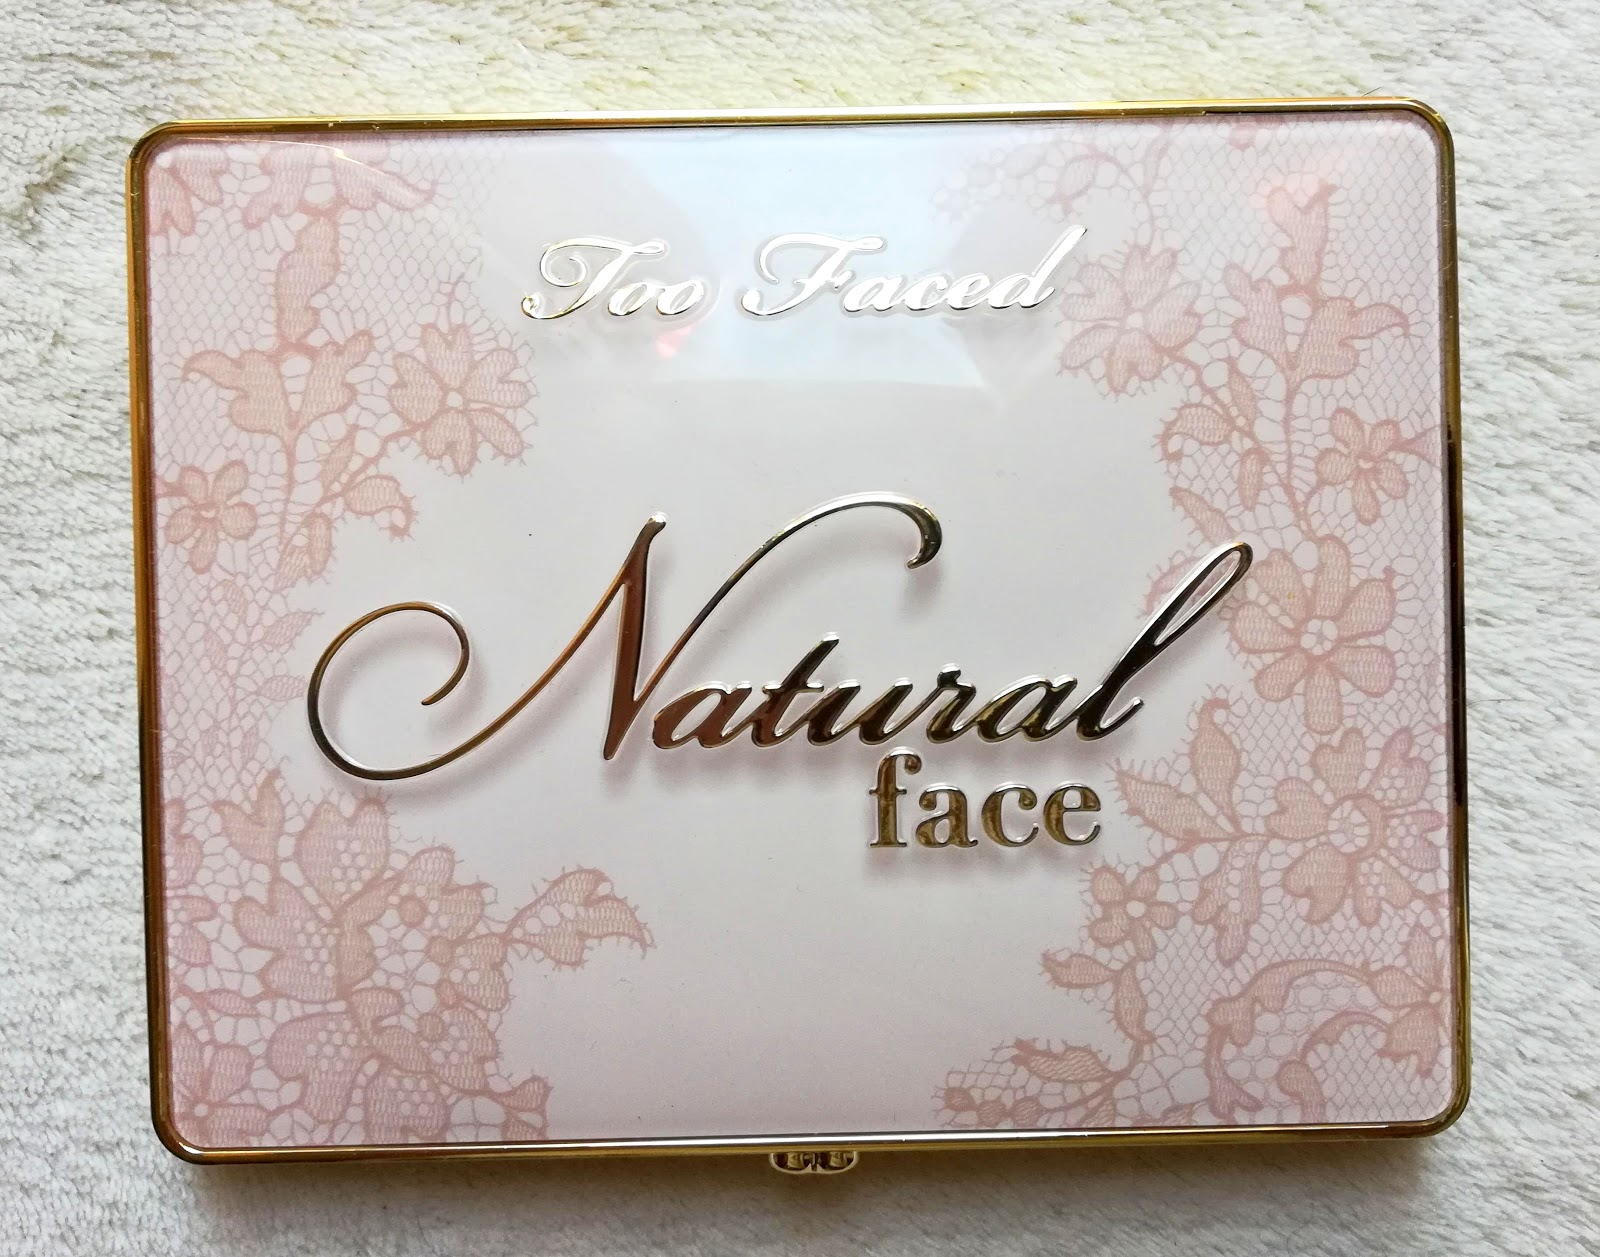 NATURAL FACE / TOO FACED, highlight, blush & bronzing veil face palette